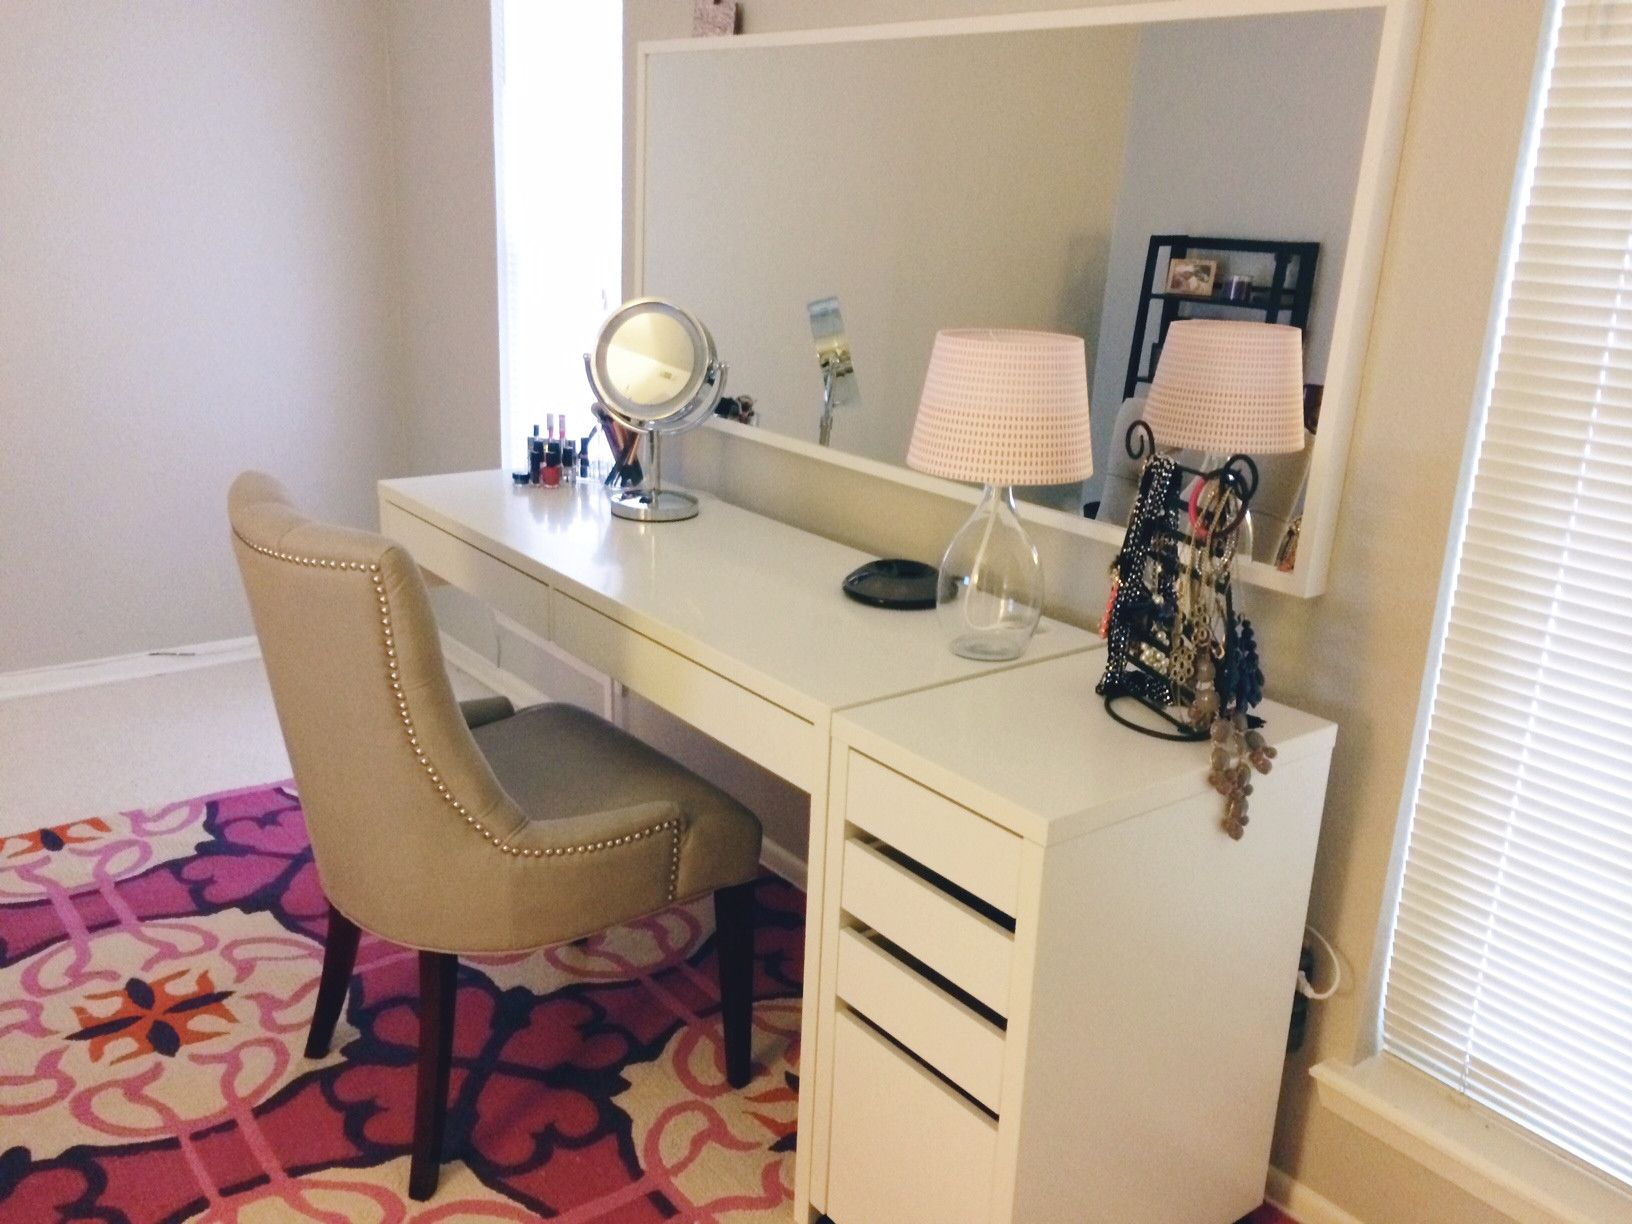 Battlestation makeup and hair micke desk bedroom desk ikea makeup - Table coiffeuse ikea ...